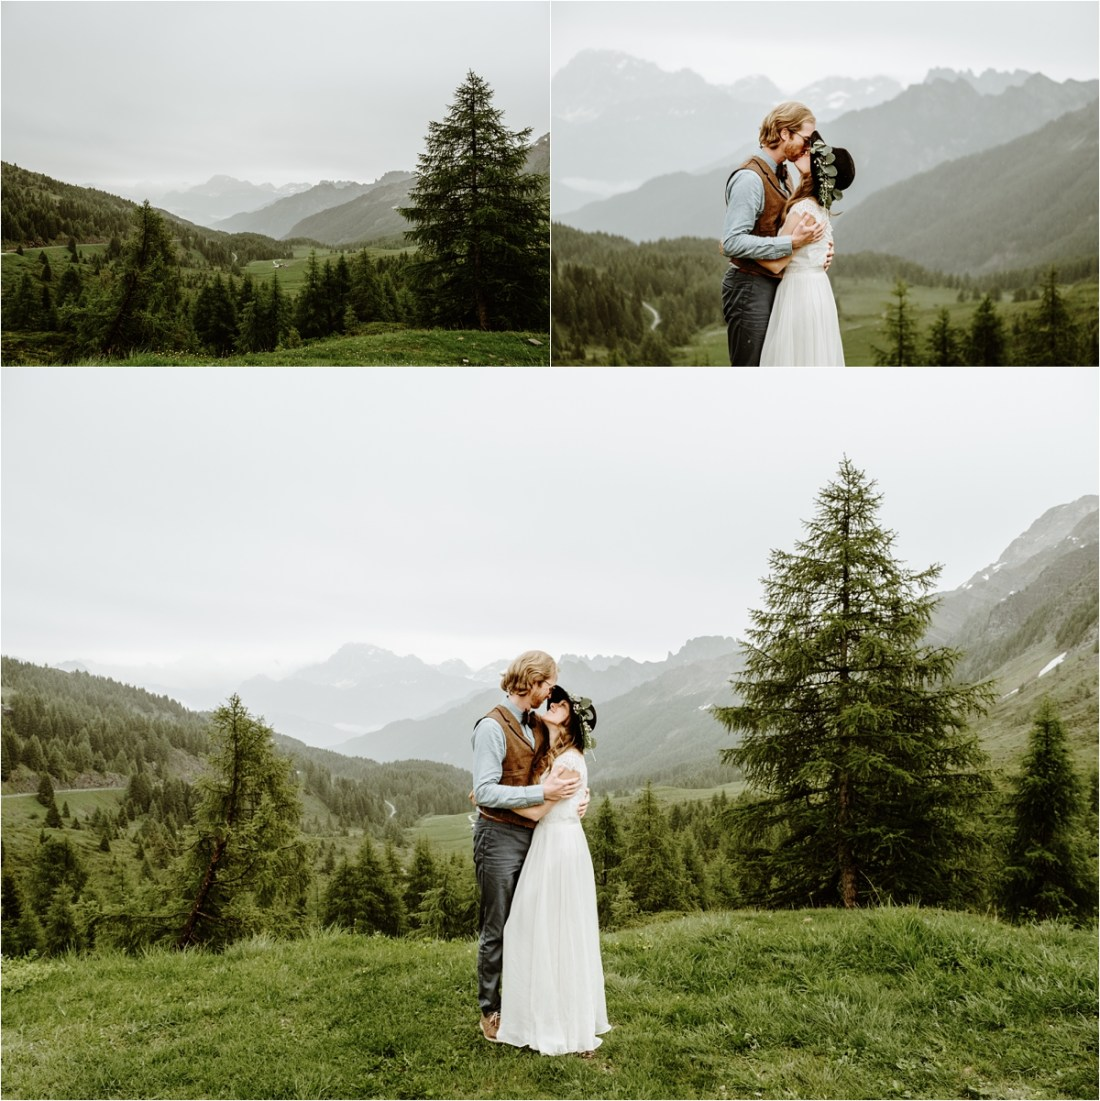 The bride and groom stand in a meadow in the rain with views of the Dolomites behind them. Photography by Wild Connections Photography